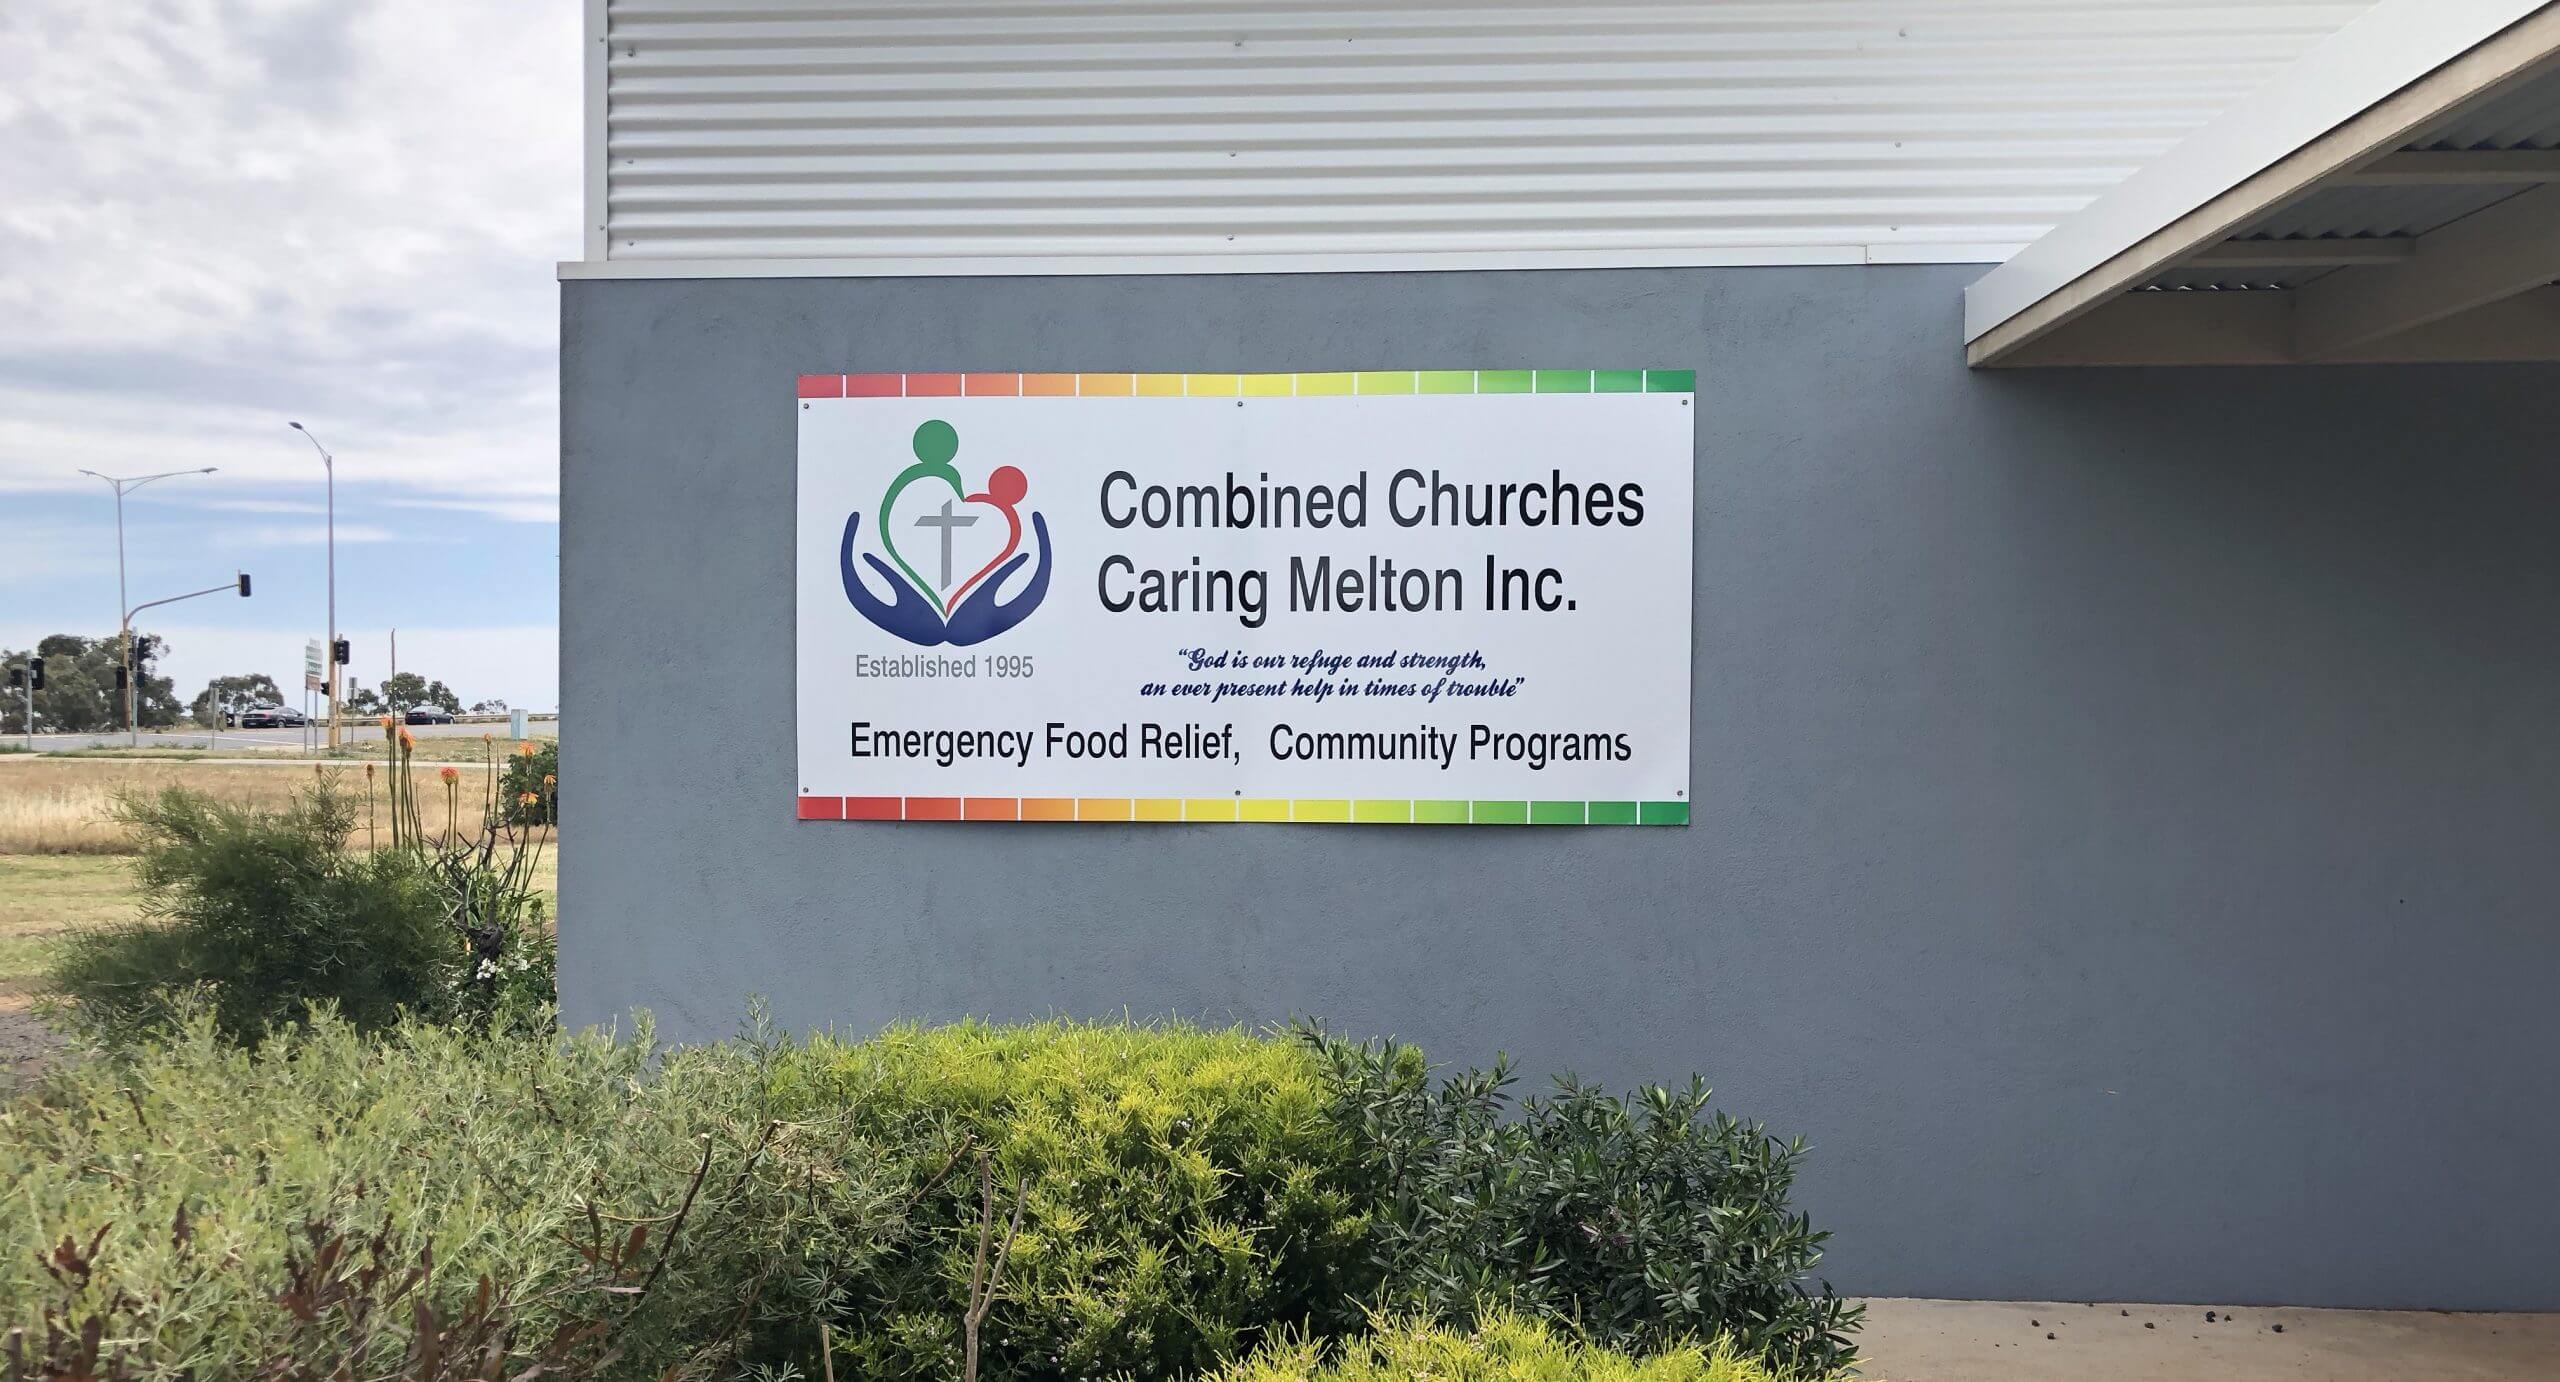 Combined Churches Caring Melton - CCCM Building with sign